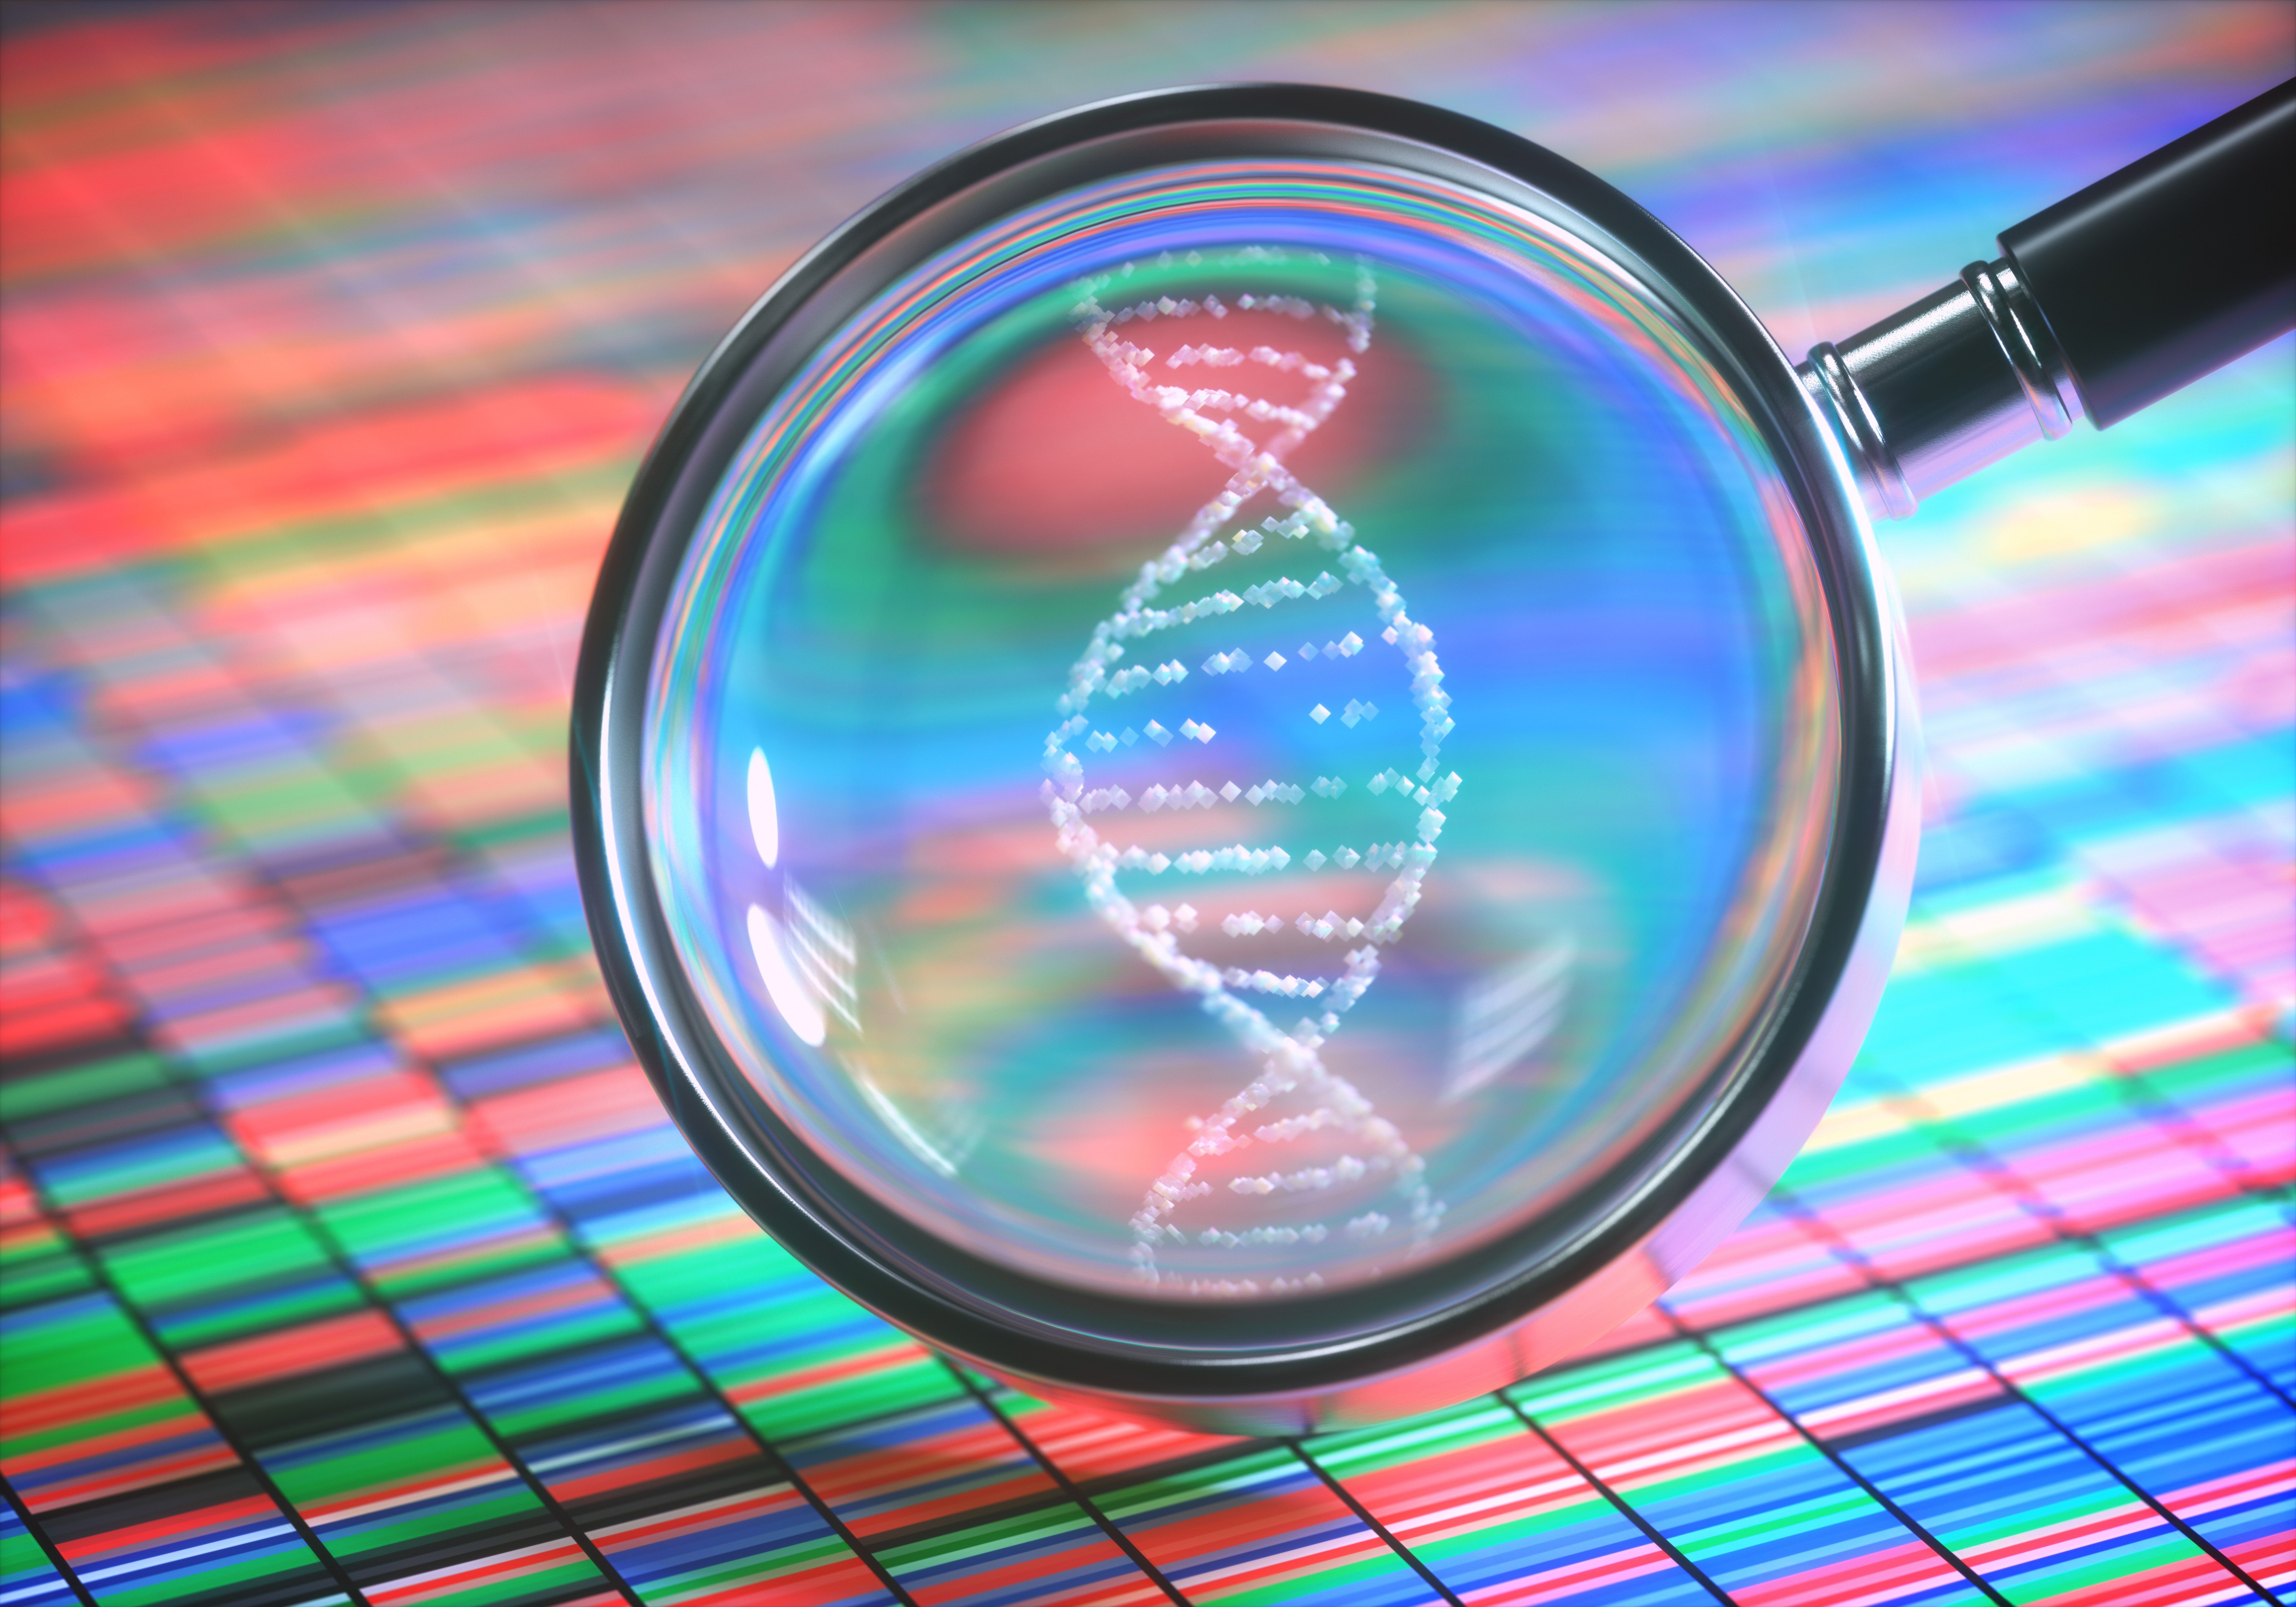 Prenetics is first Hong Kong firm to take genetic test kit